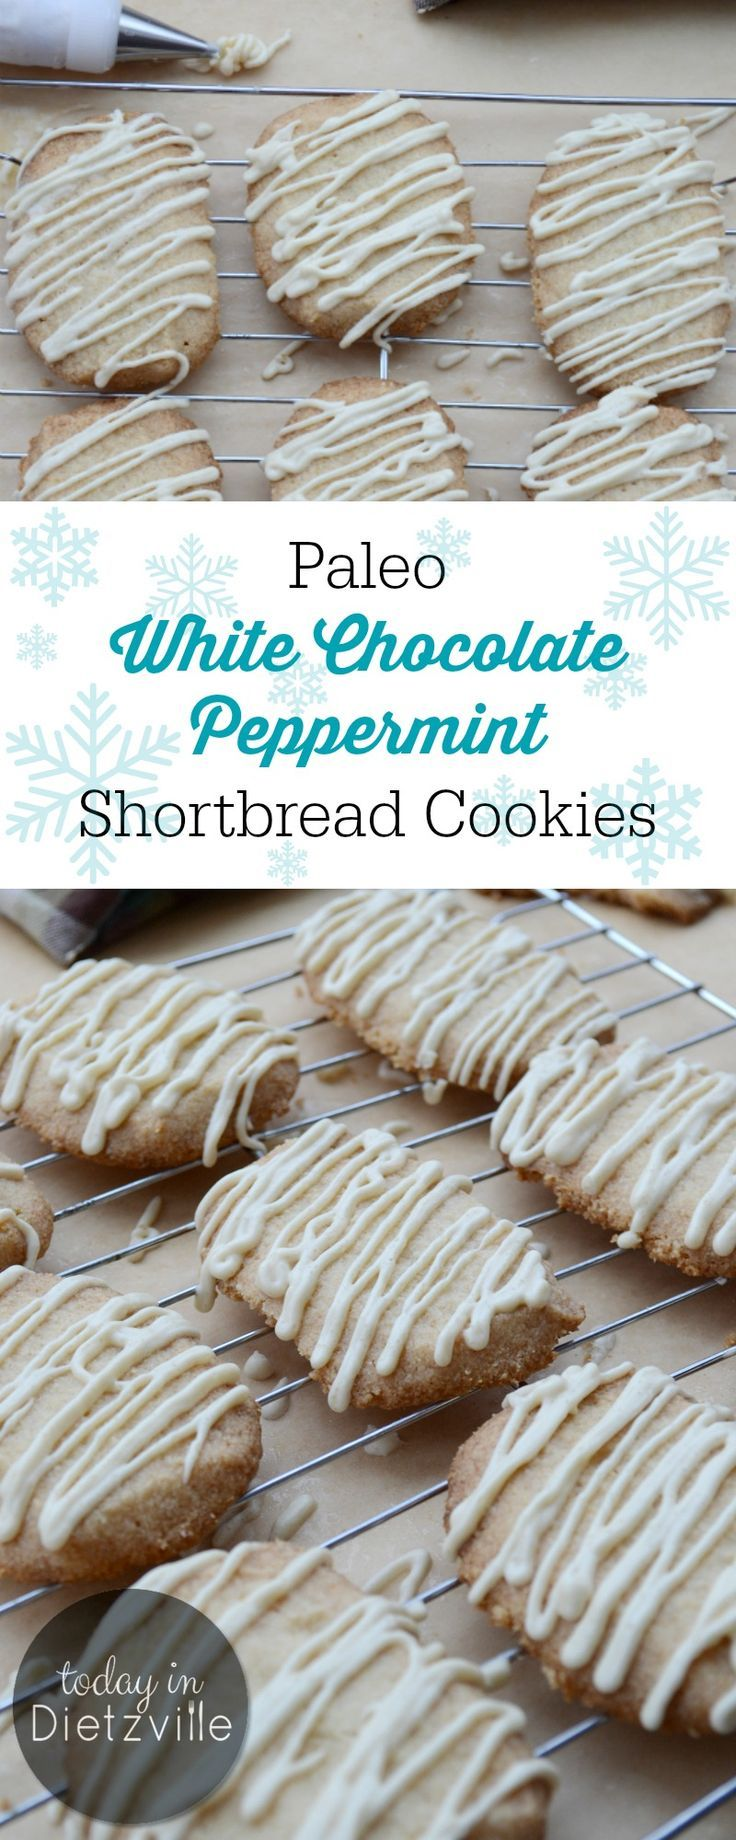 The flavor of white chocolate and peppermint in a slightly crisp (sugar-free, if you like!) cookie is simply divine. These Paleo White Chocolate Peppermint Shortbread Cookies are made with the simplest, whole ingredients and can banish a case of the winter blues like nothing else! They're grain-free, dairy-free, egg-free, and can be low-carb with a sweetener swap!